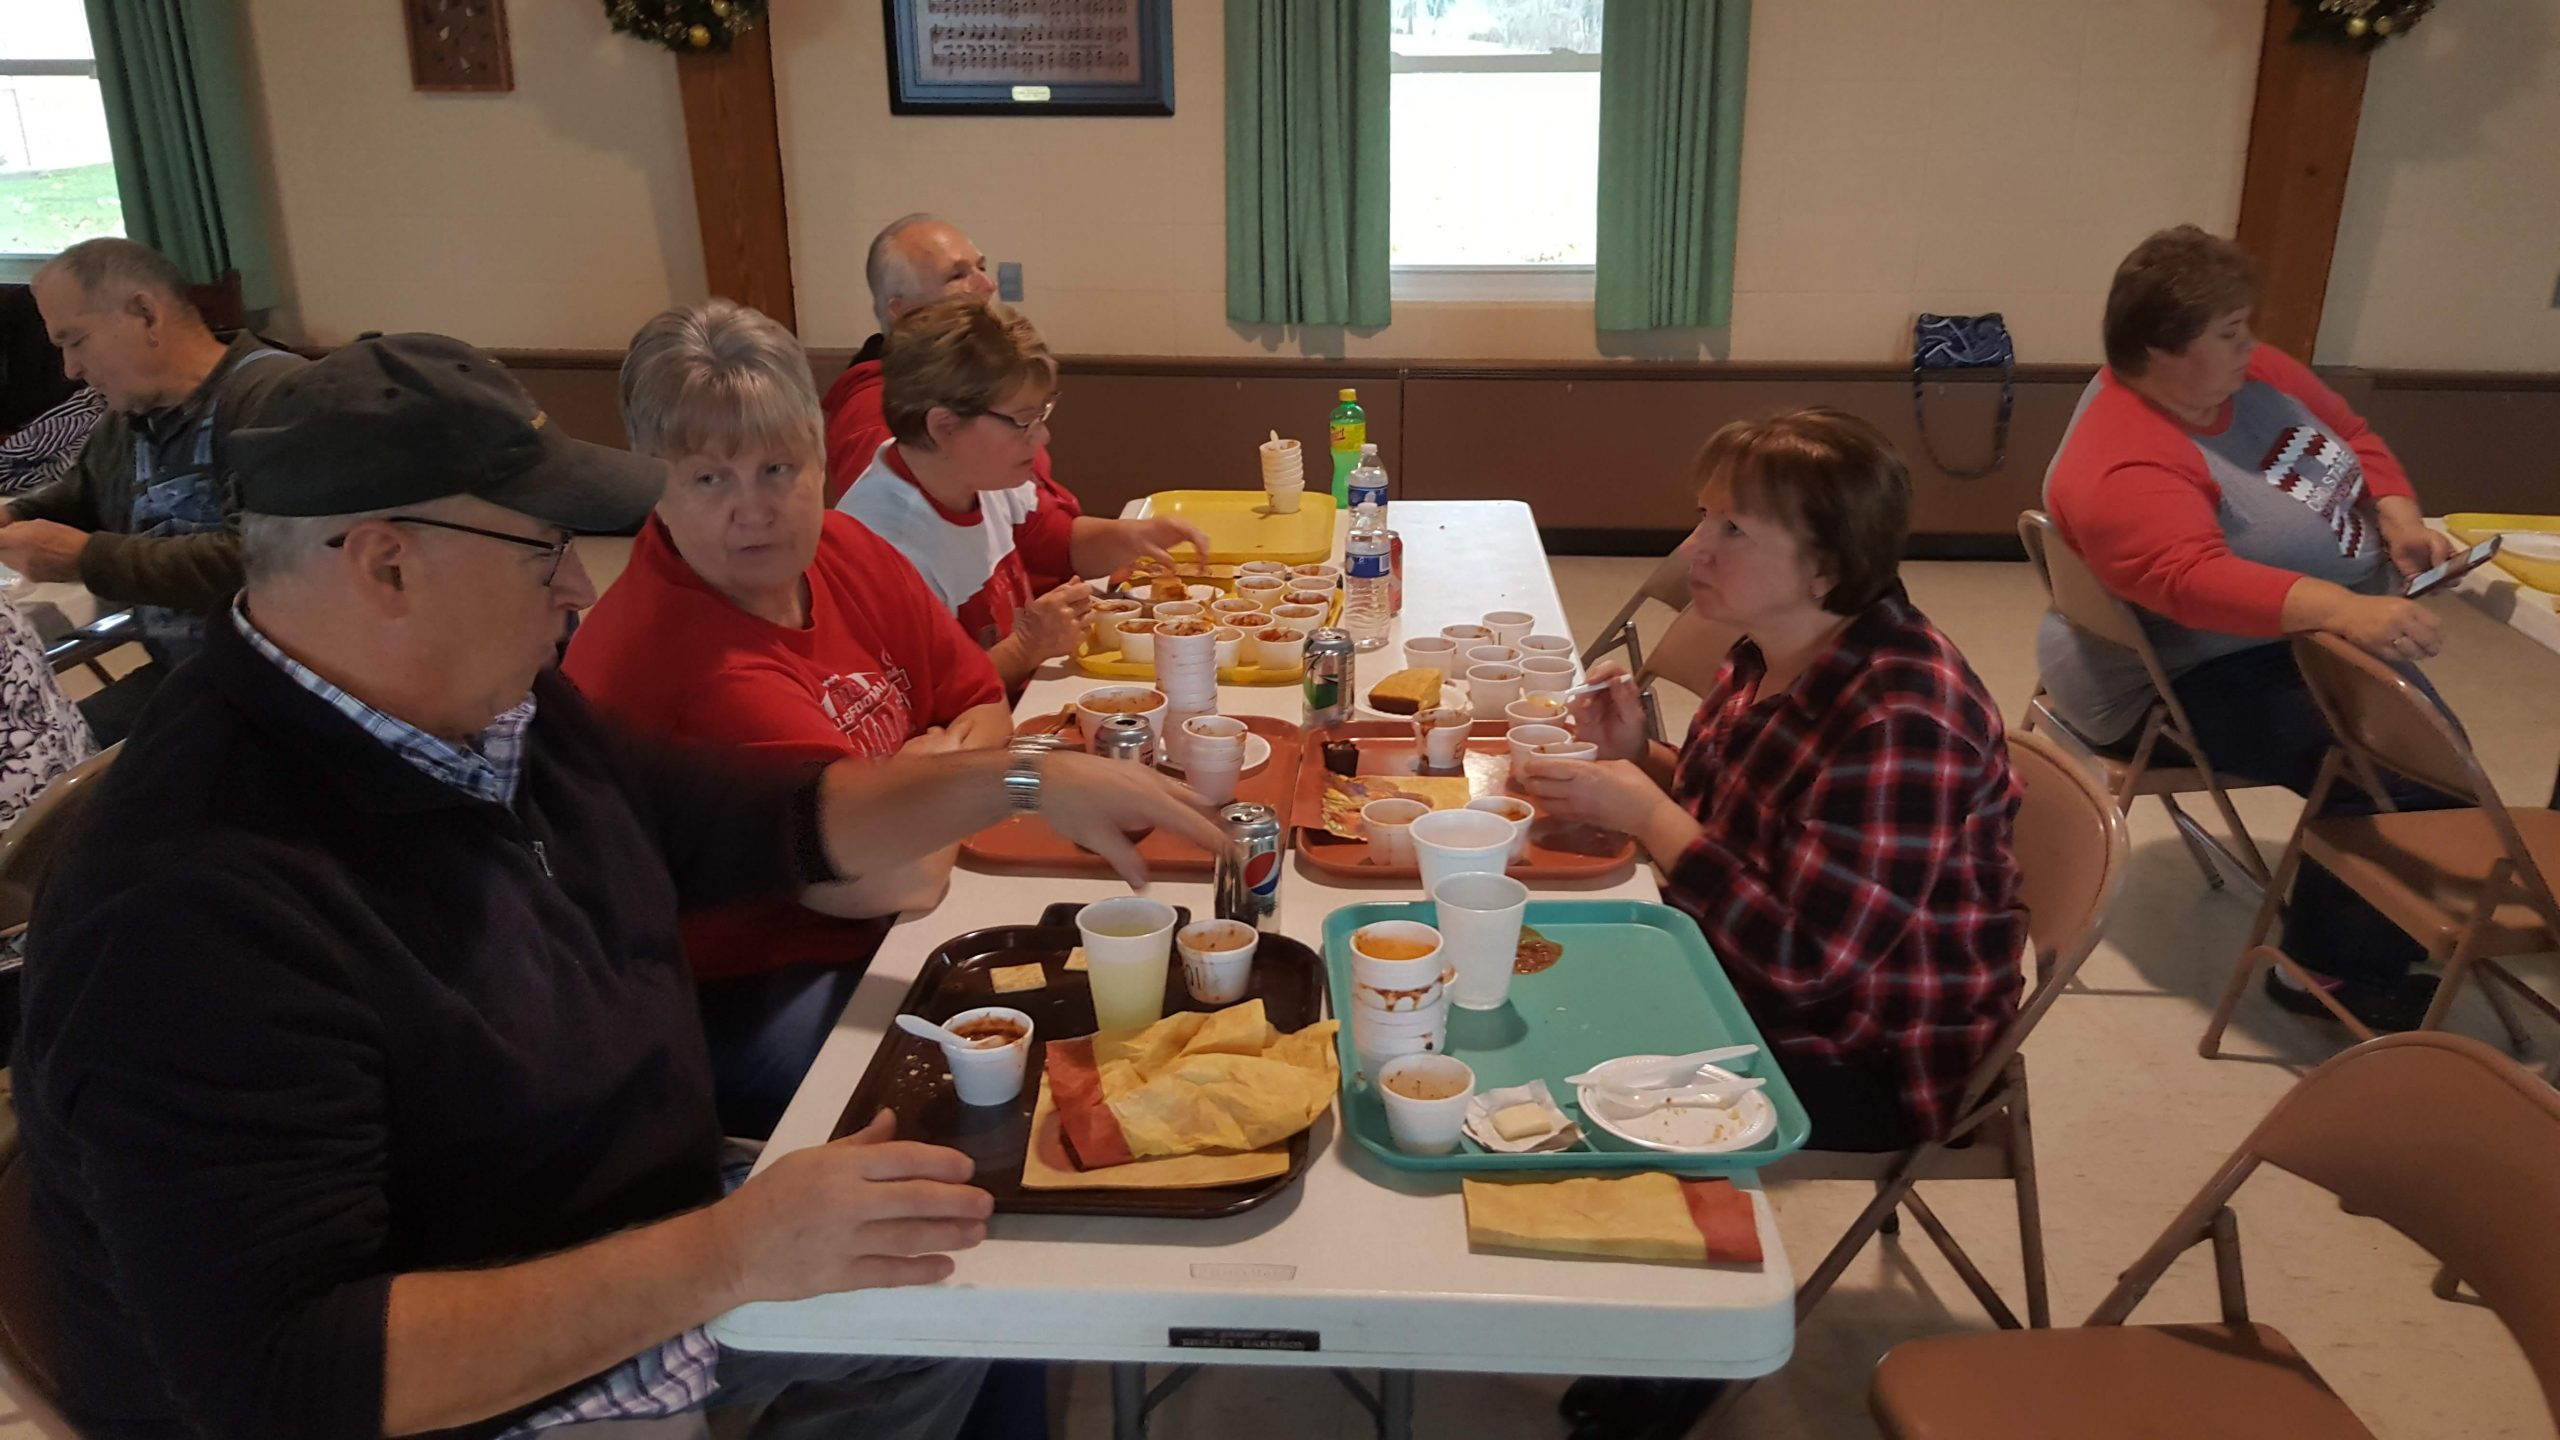 2019 Chili Cookoff - Otterbein Umc, Navarre Oh Throughout Canton Tx Trade Days 2021 Calendar